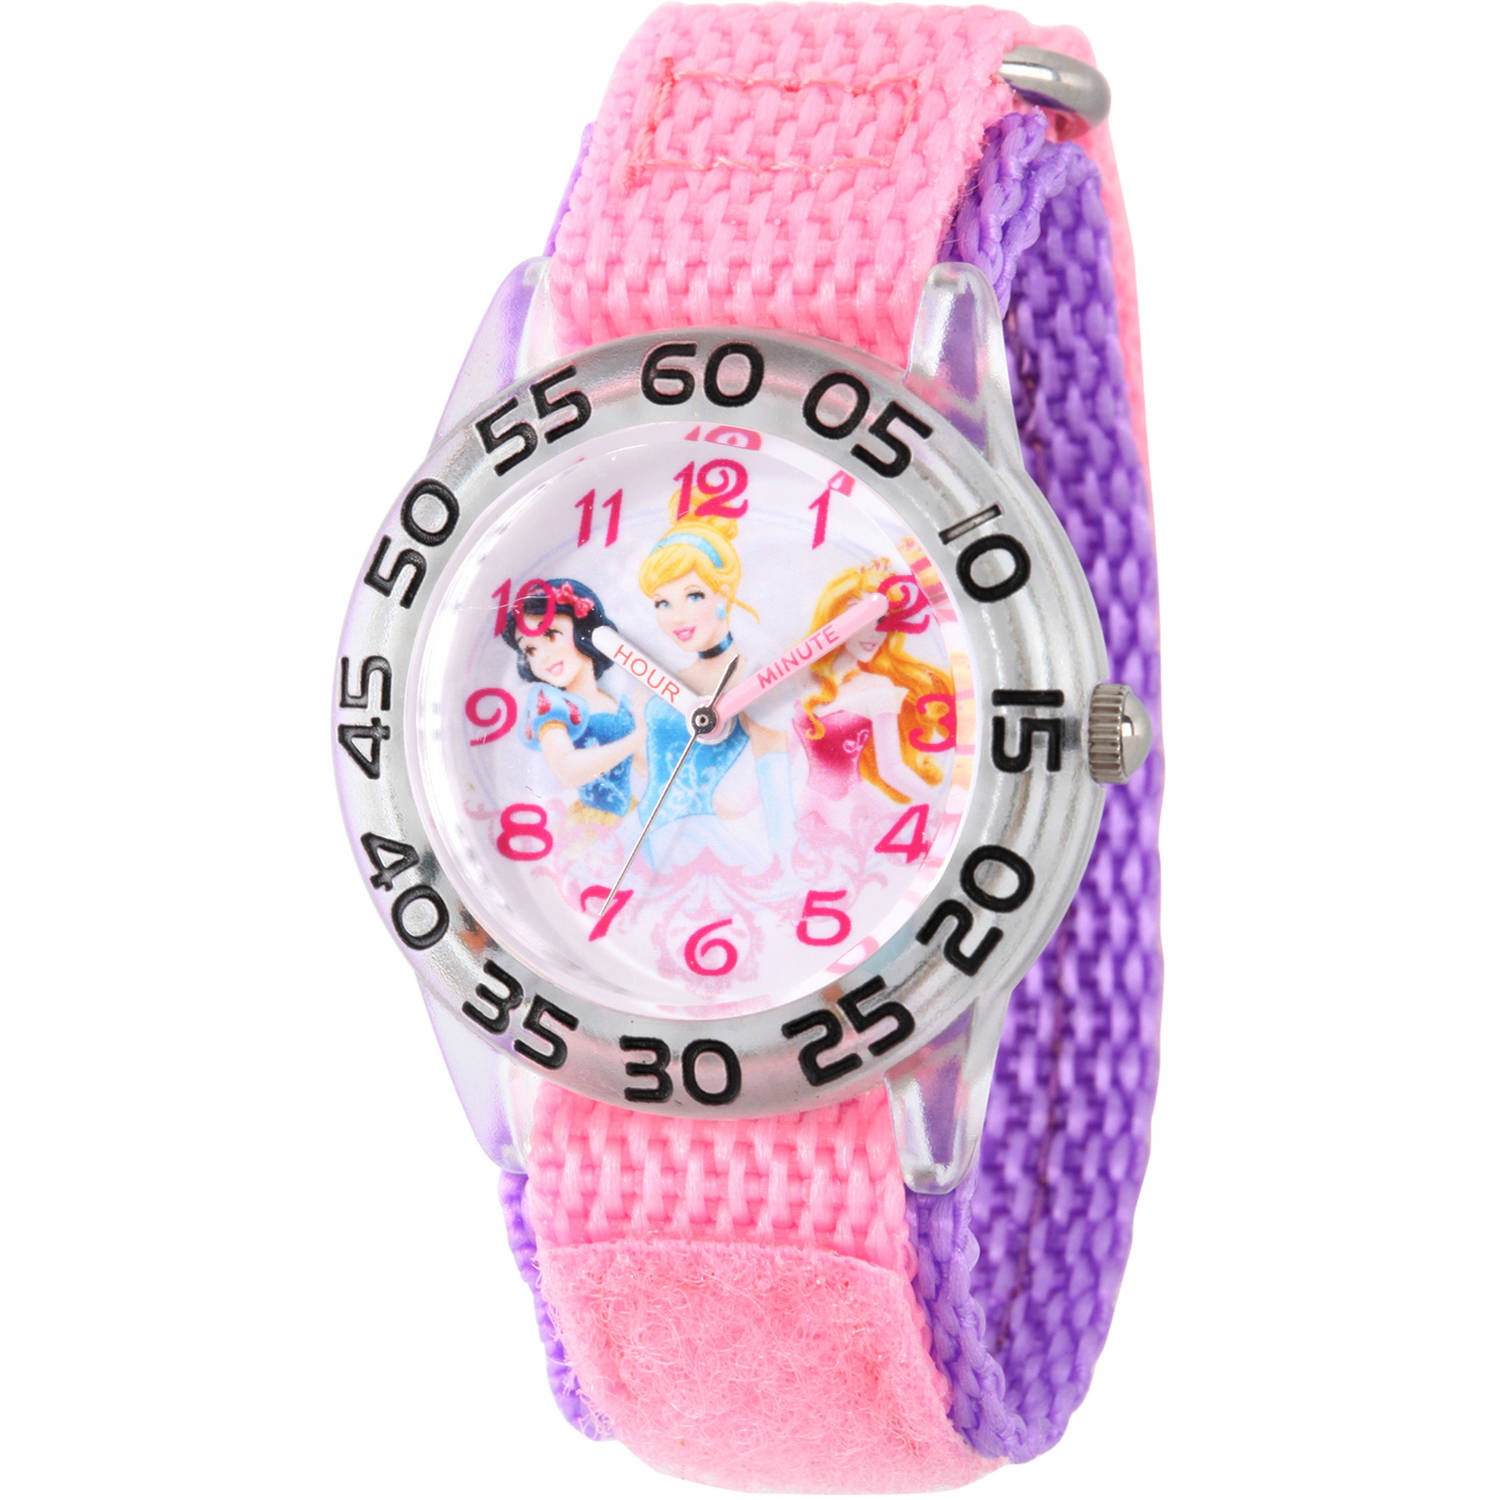 Disney Princess Snow White, Cinderella and Aurora Girls' Plastic Time Teacher Watch, Pink Nylon Strap